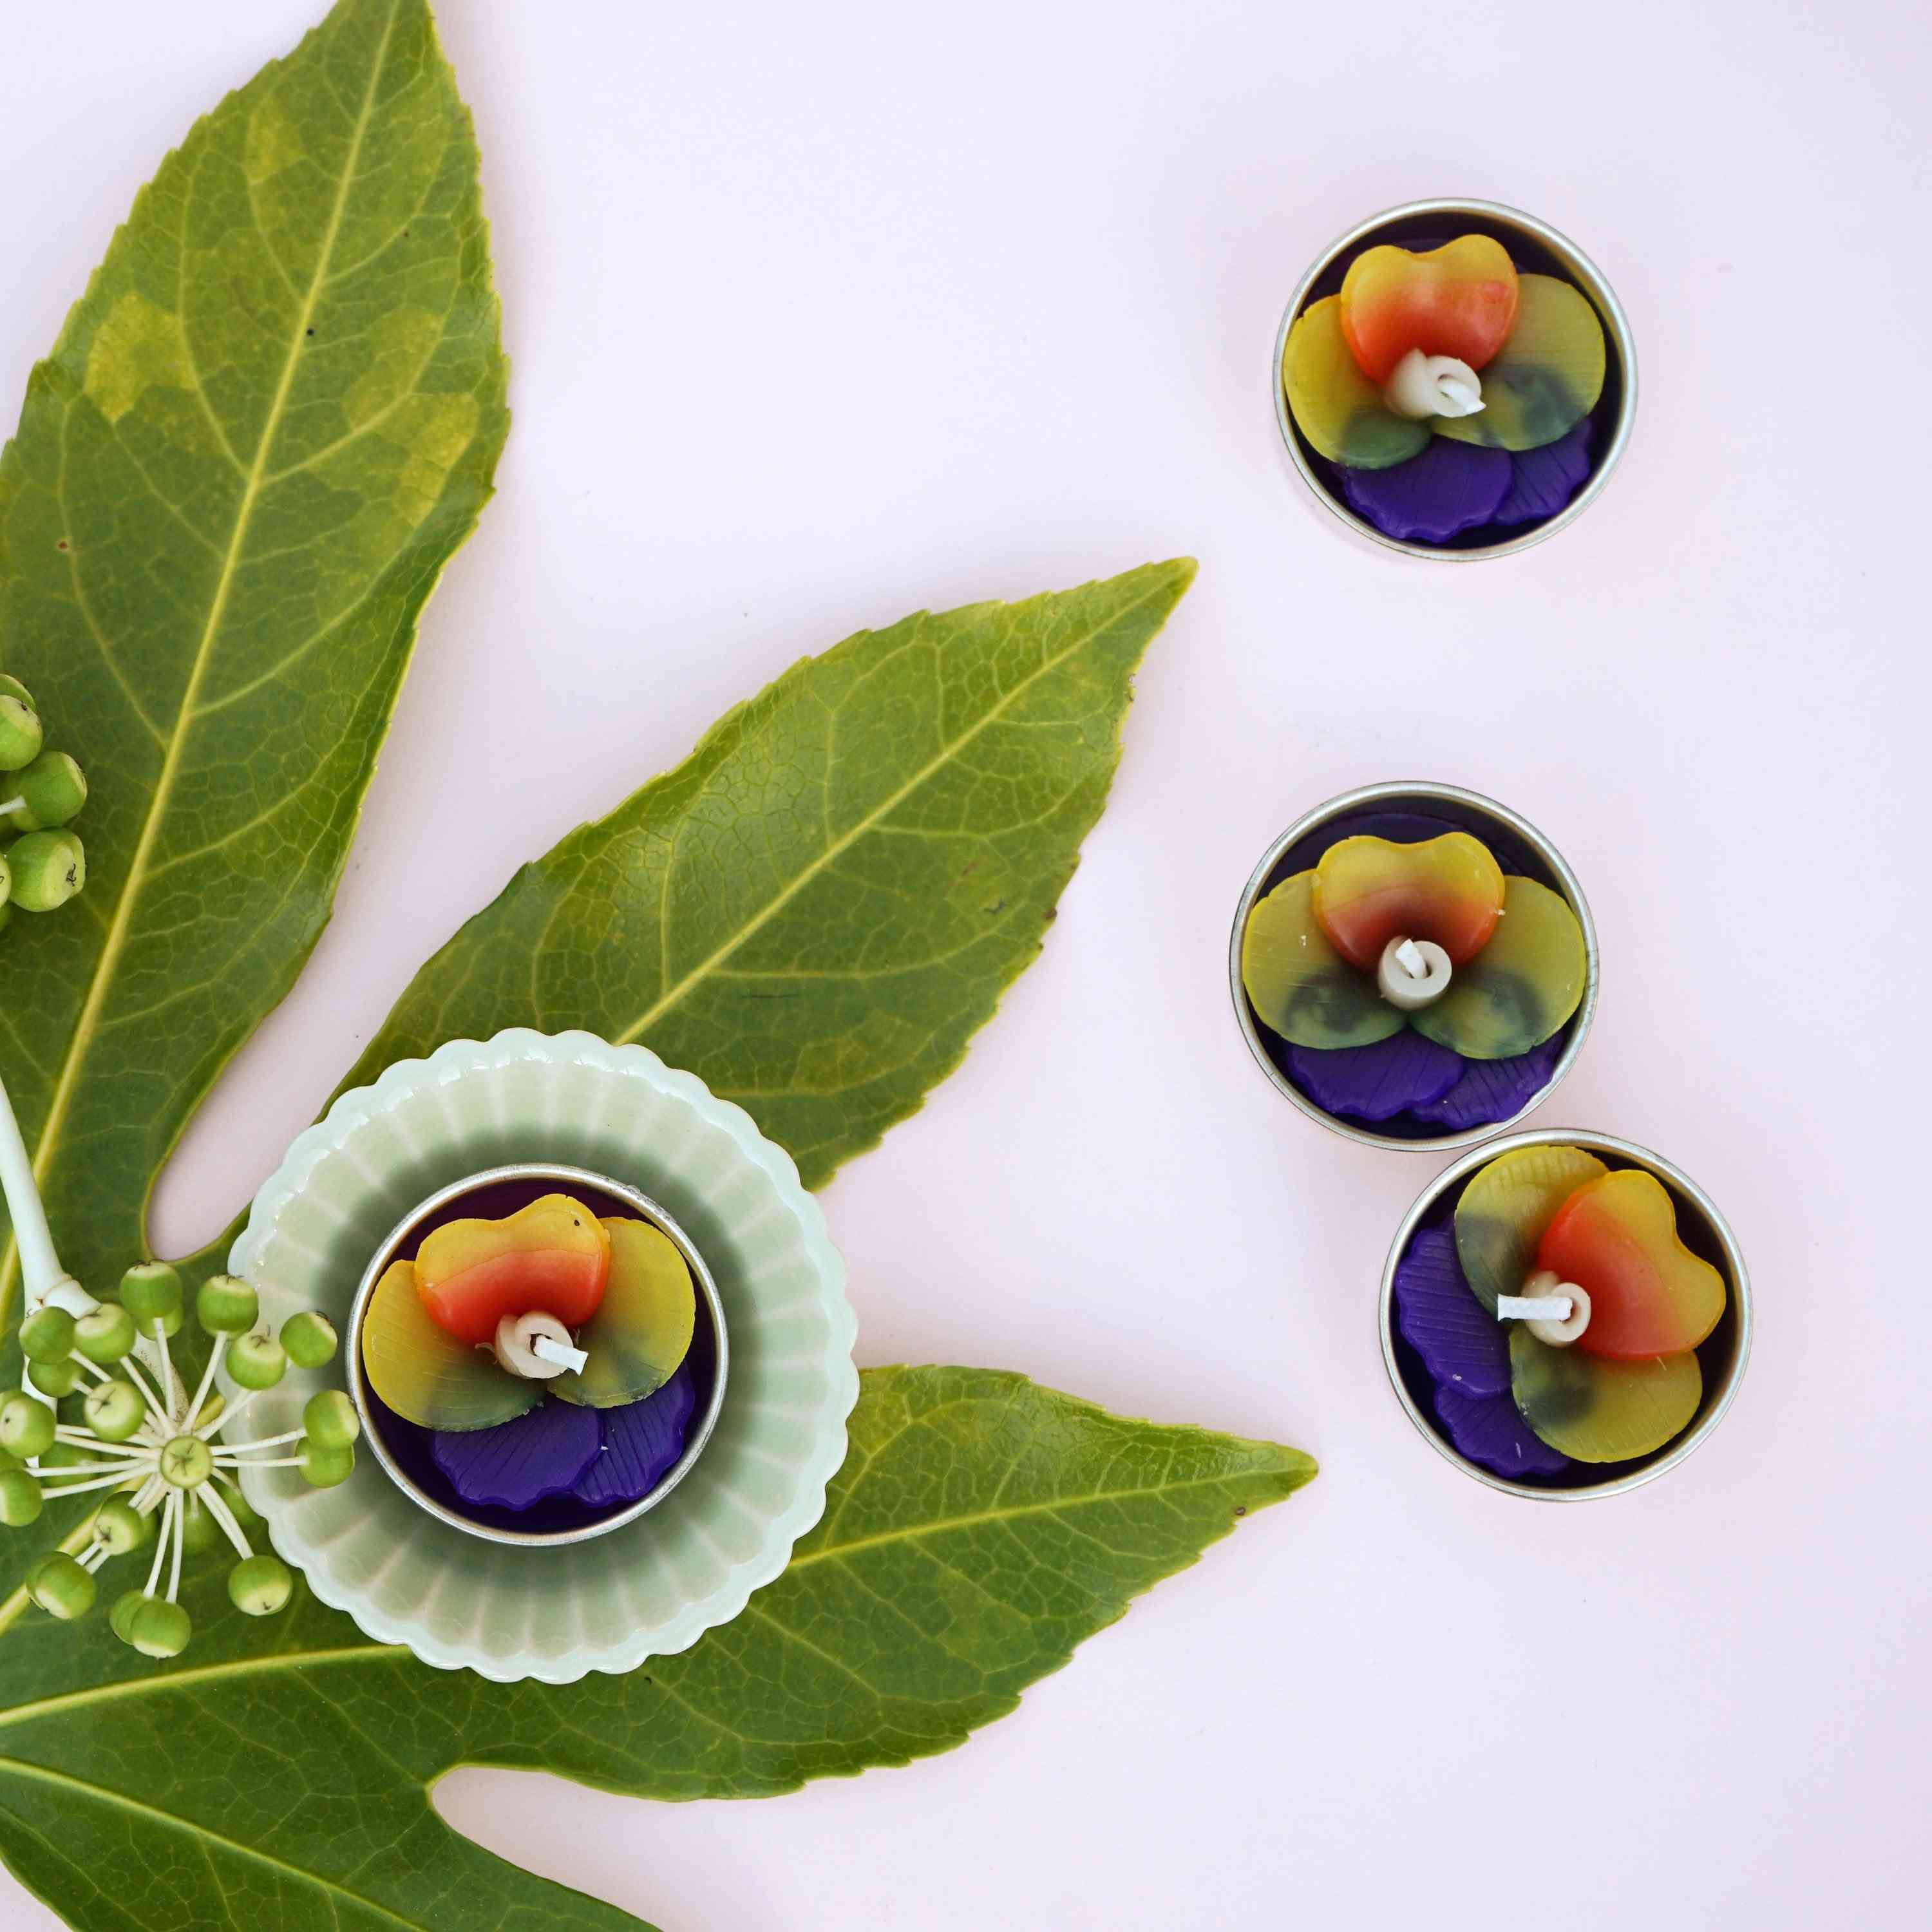 Purple Pansy Scented Tealights